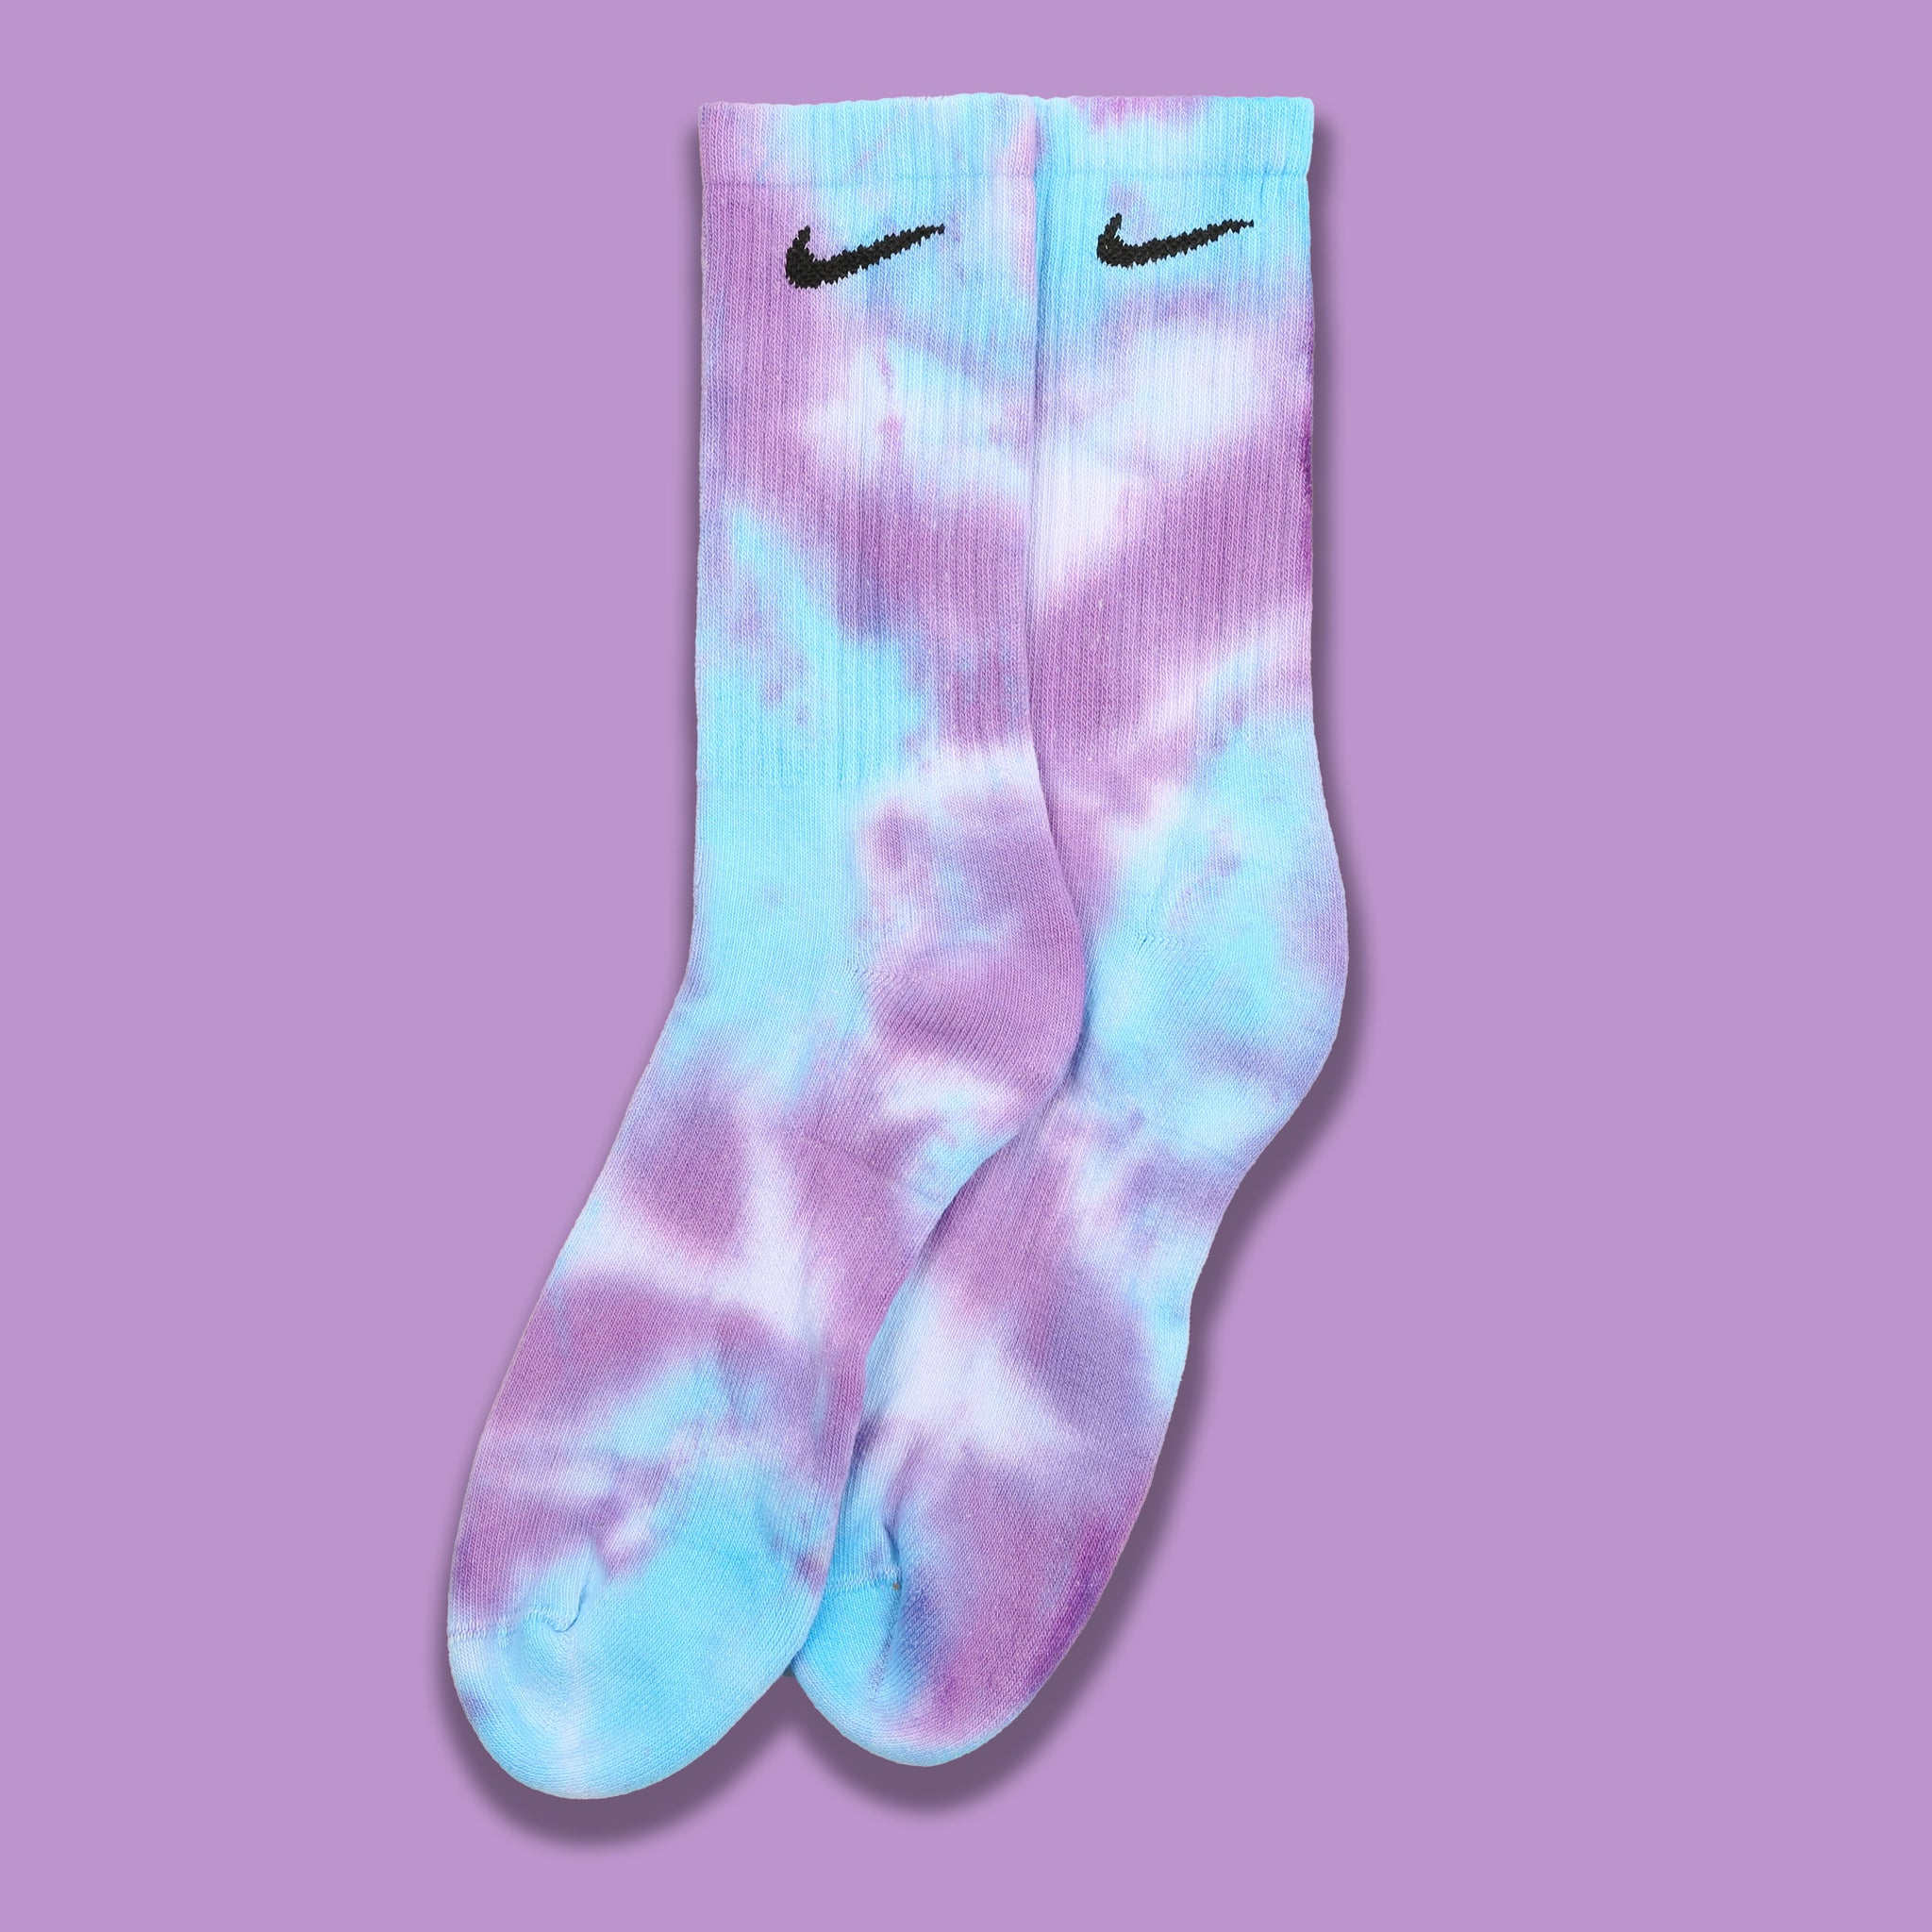 Nike Socks Tie Dye Purple/Blue Large